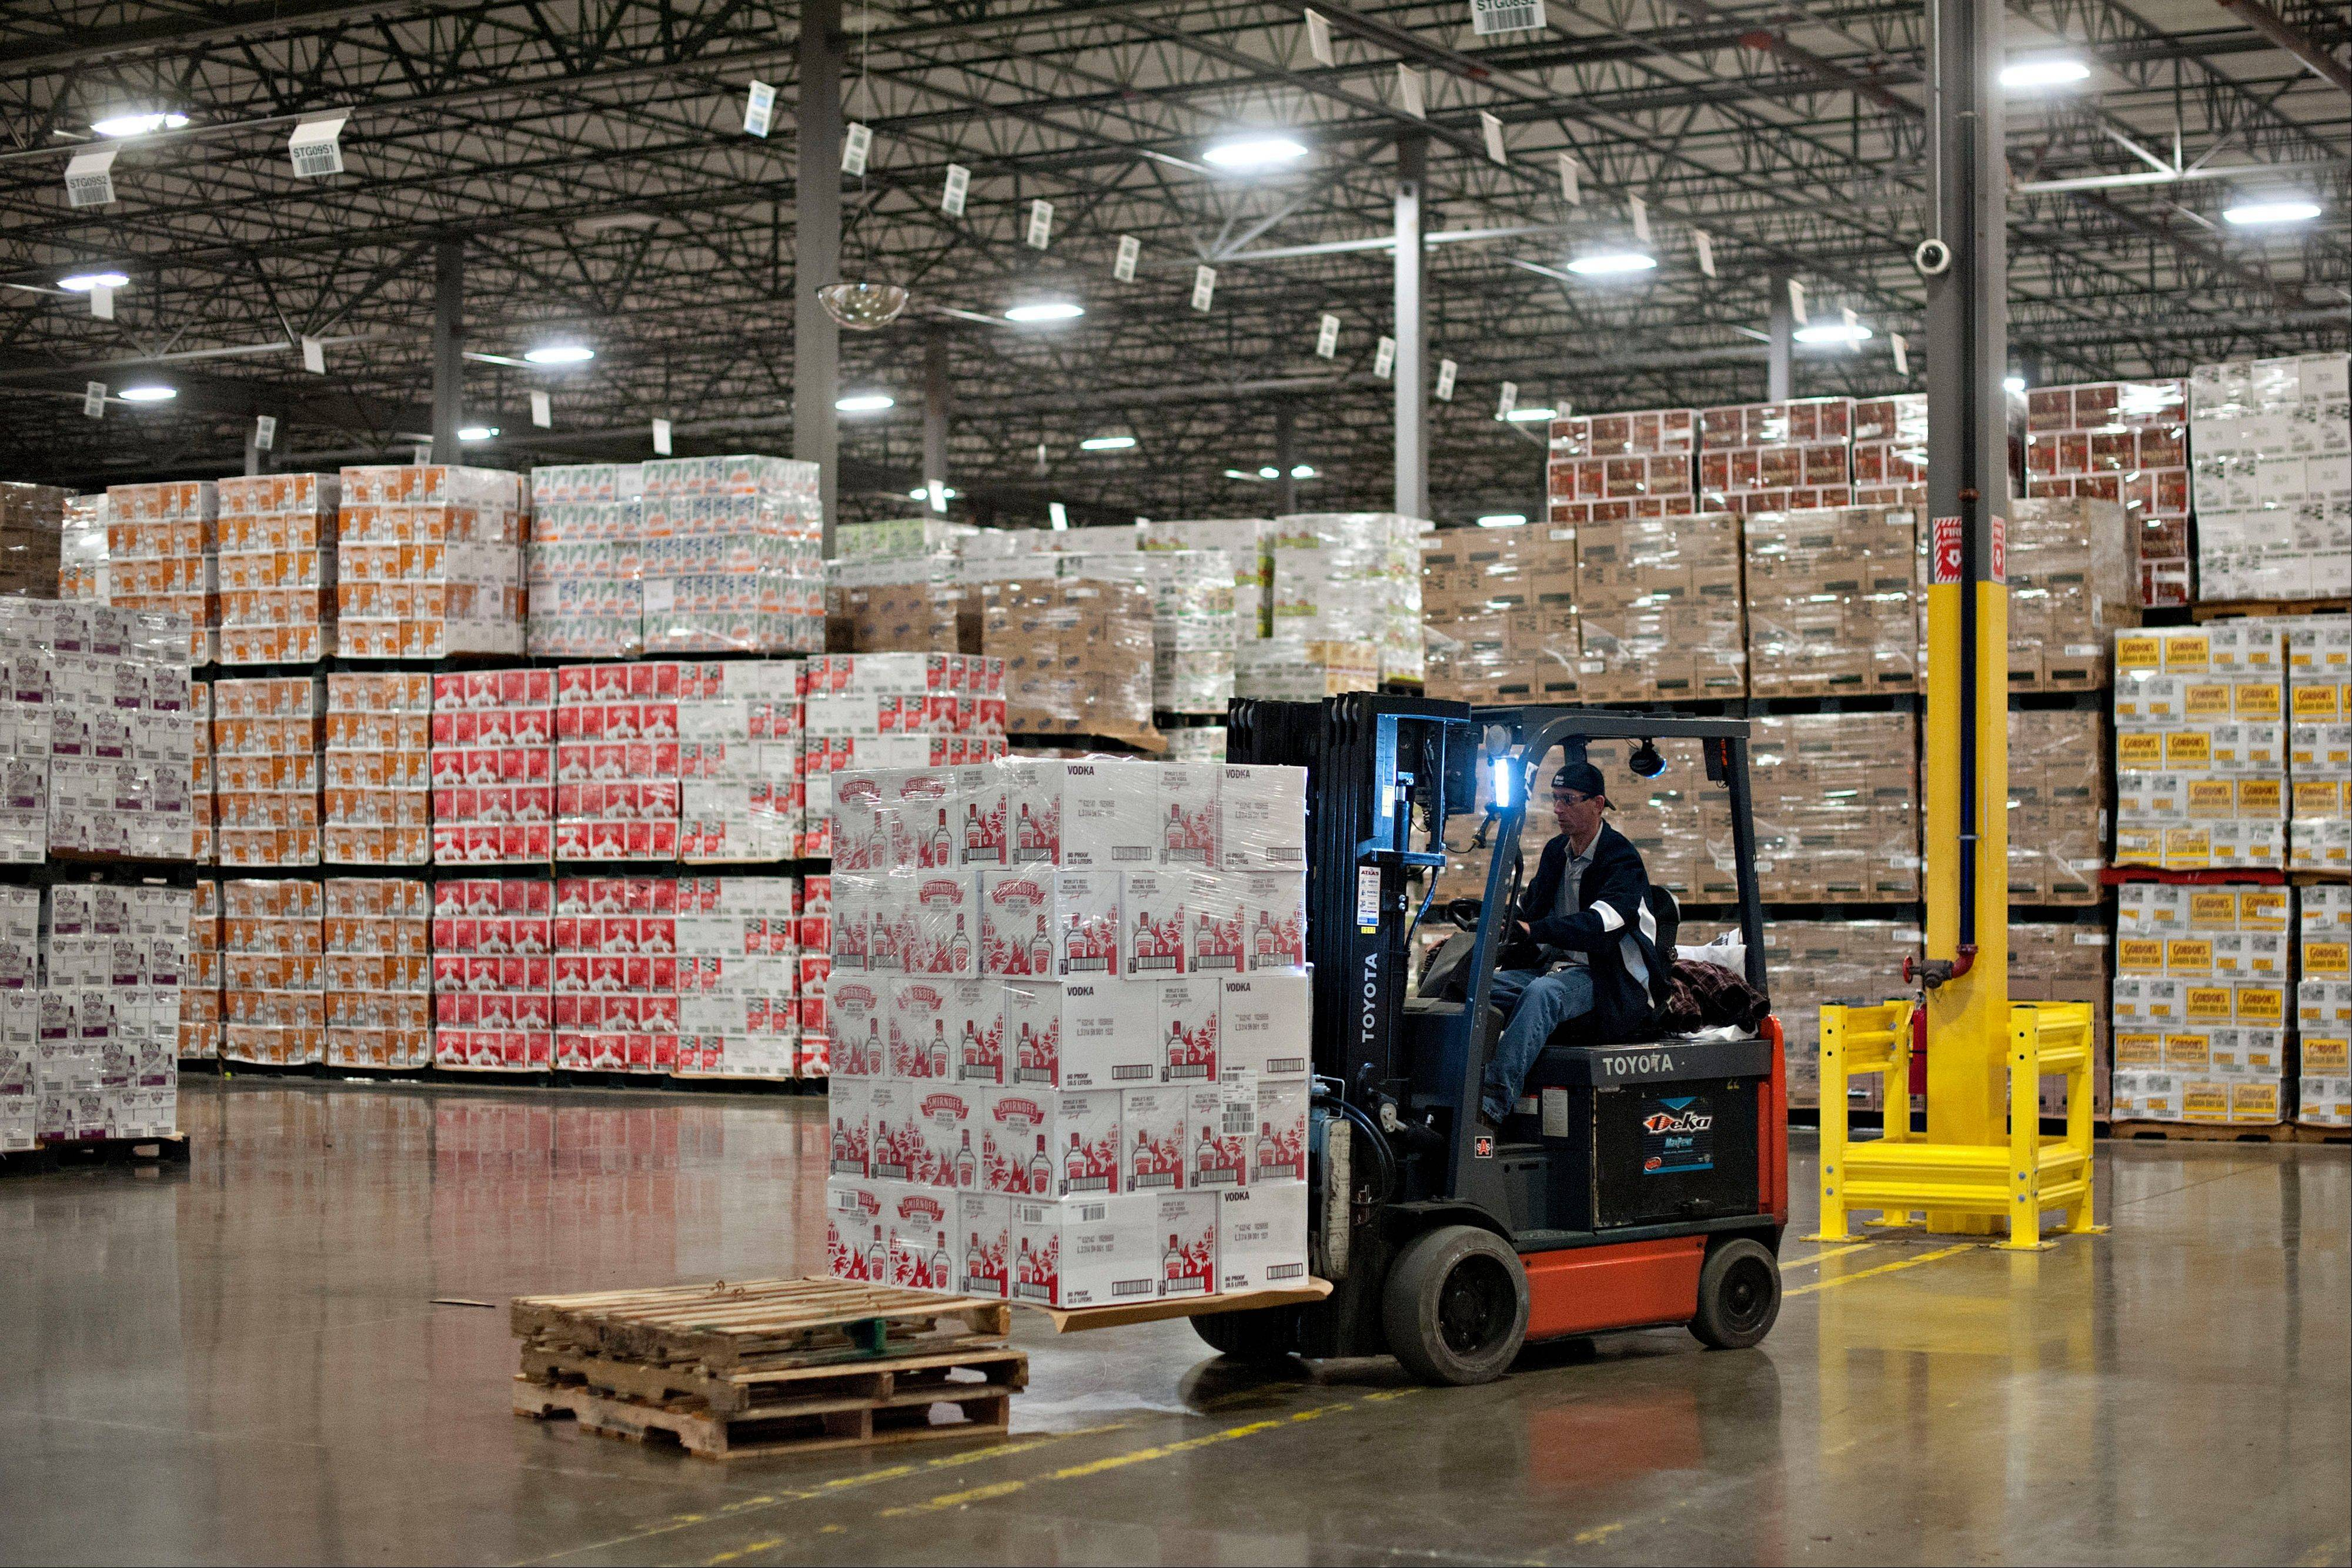 A forklift operator moves a stack of Diageo Plc's Smirnoff brand vodka in a distribution warehouse in Bolingbrook.